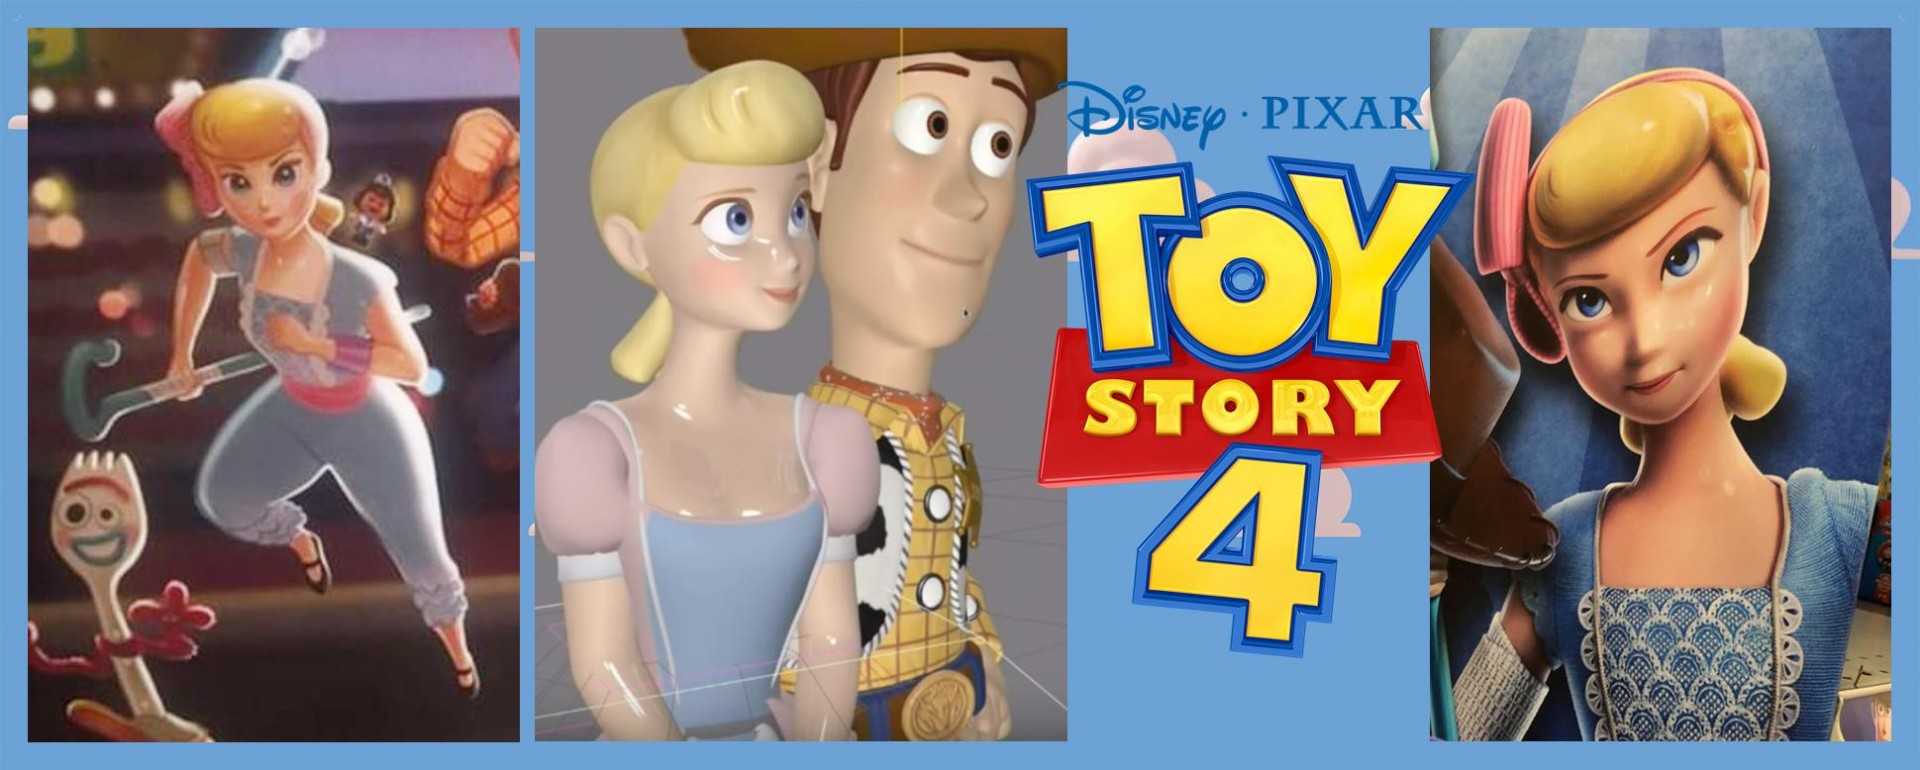 Toy-Story-4-Bo-Peep-New-Look.jpg